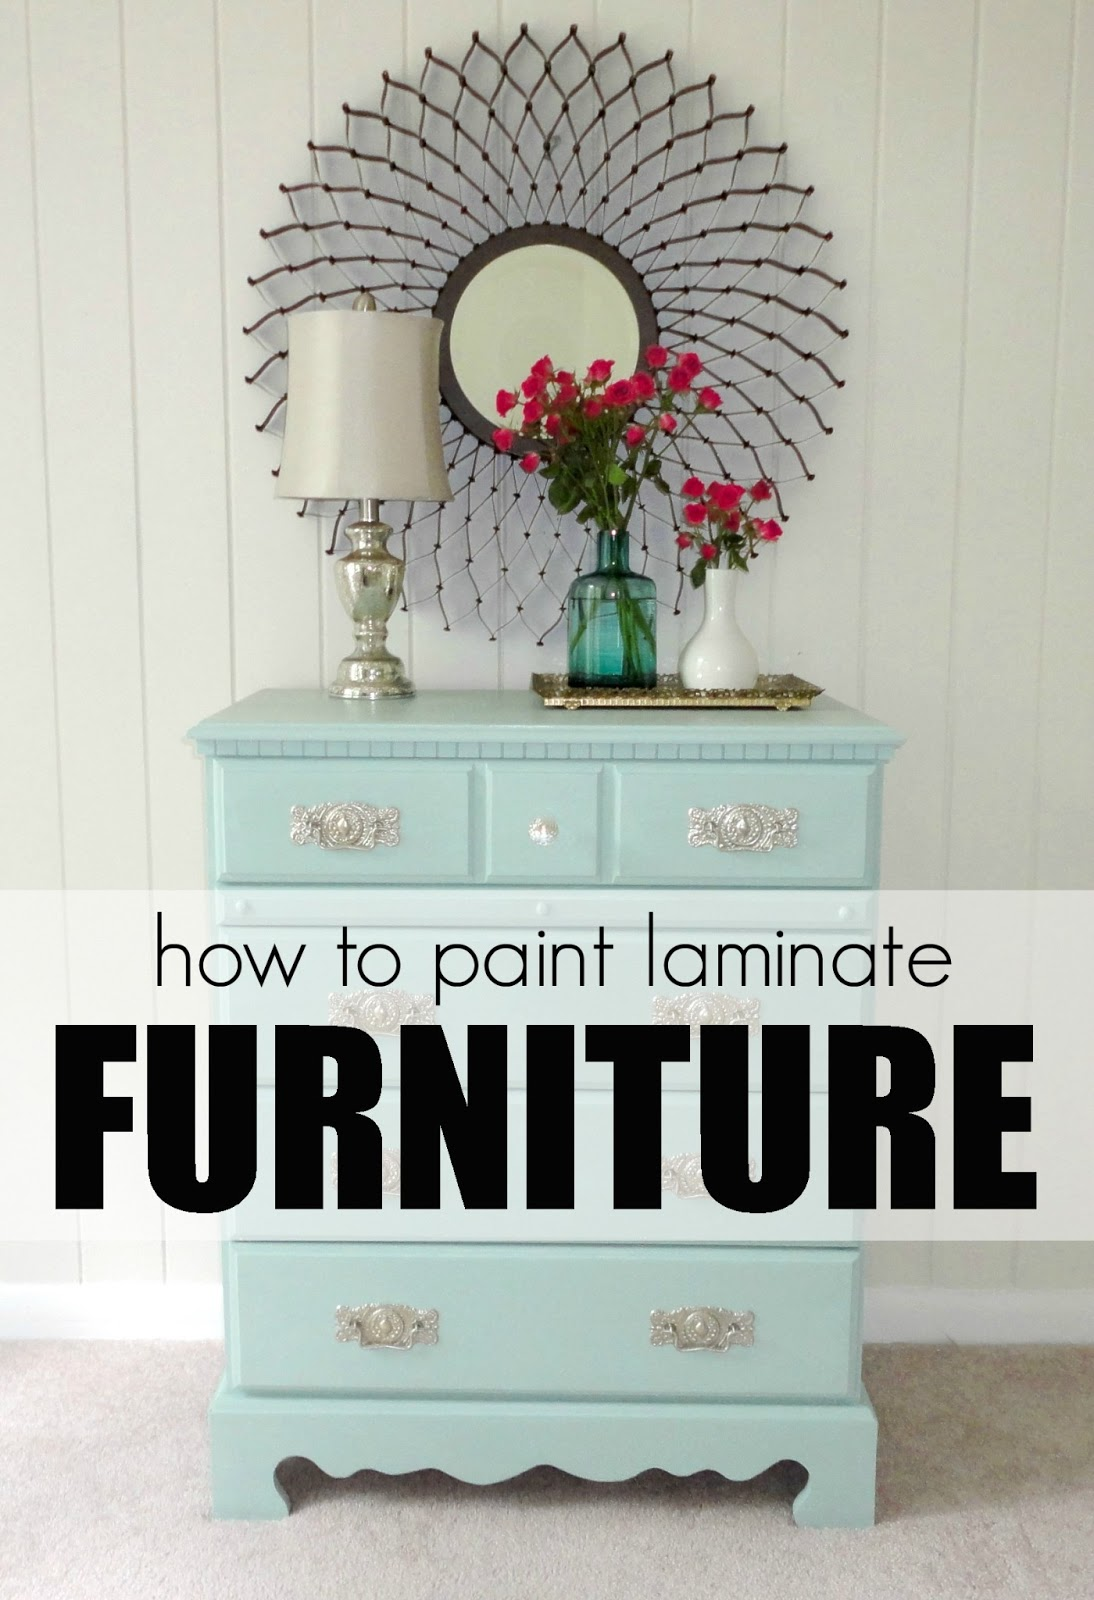 How To Paint Laminate Furniture in 3 Easy Steps. LiveLoveDIY  How To Paint Laminate Furniture in 3 Easy Steps